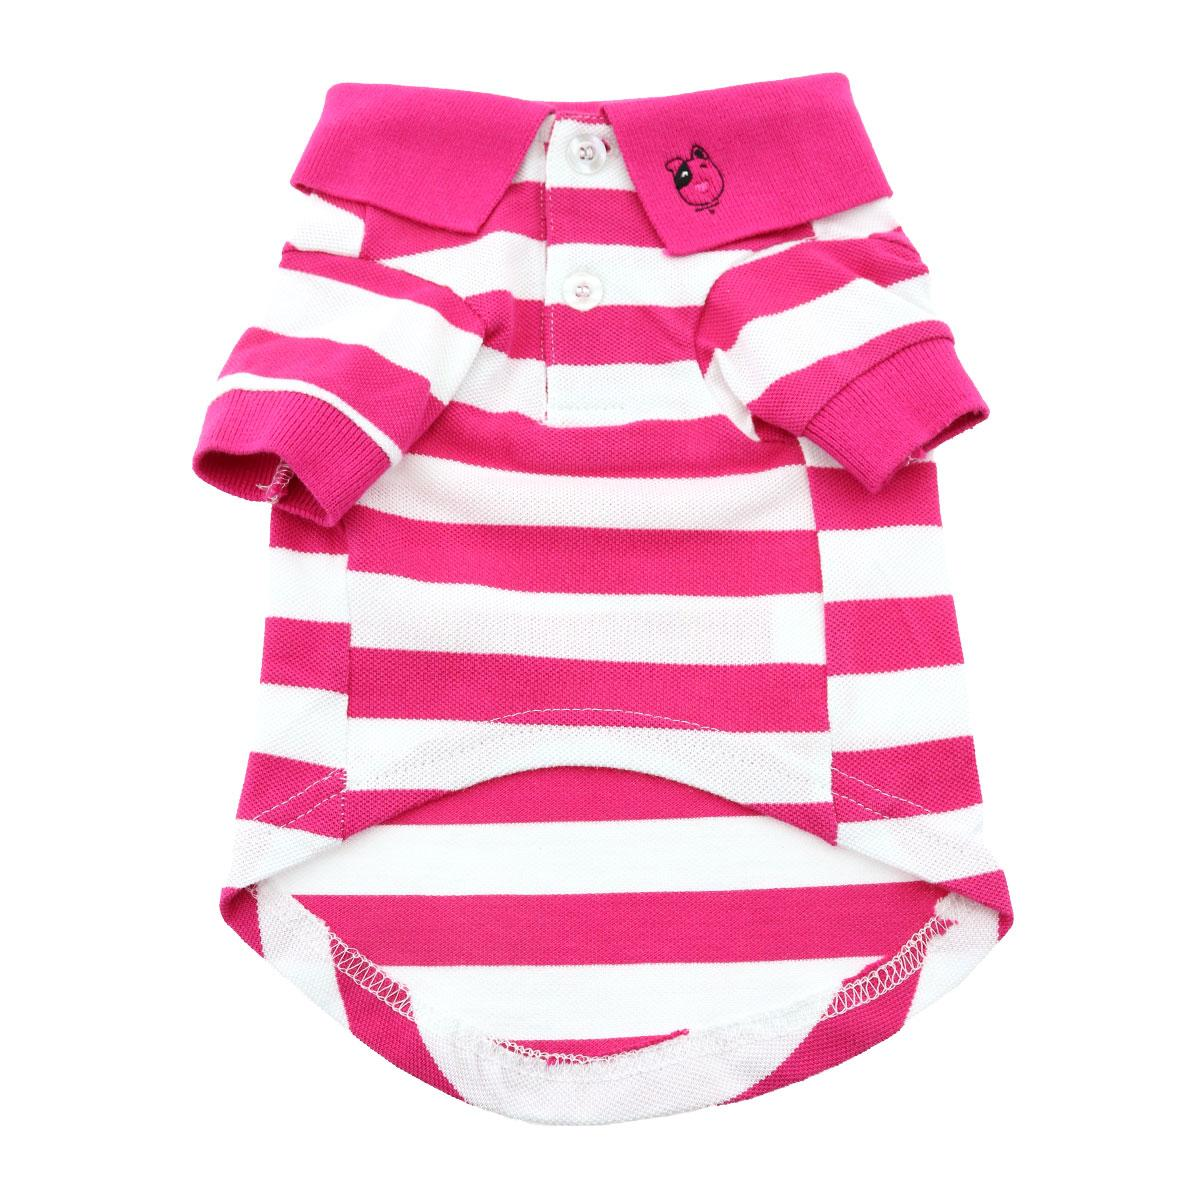 Doggie Design Polo Shirt for Dogs, Striped Pink Yarrow & White, X-Small